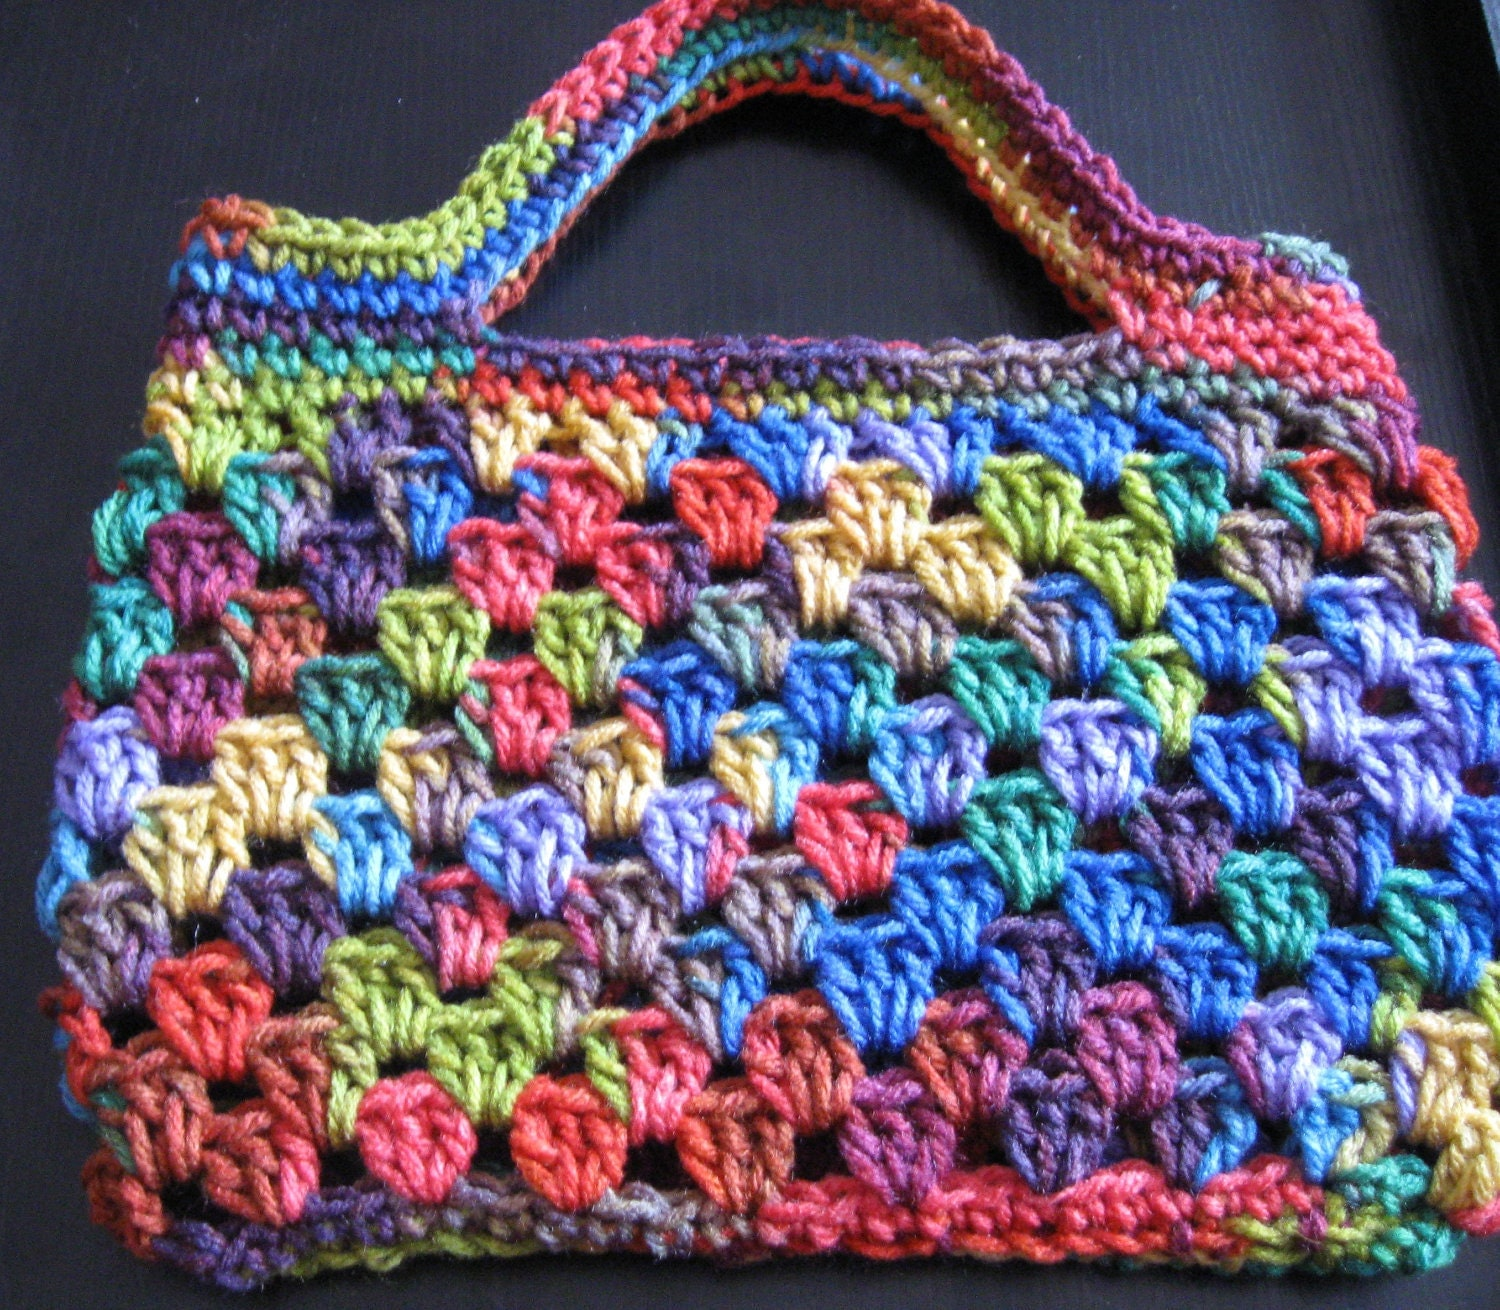 Crochet Rainbow Bag : Items similar to Crochet Rainbow bag or purse. Granny stripe. on Etsy